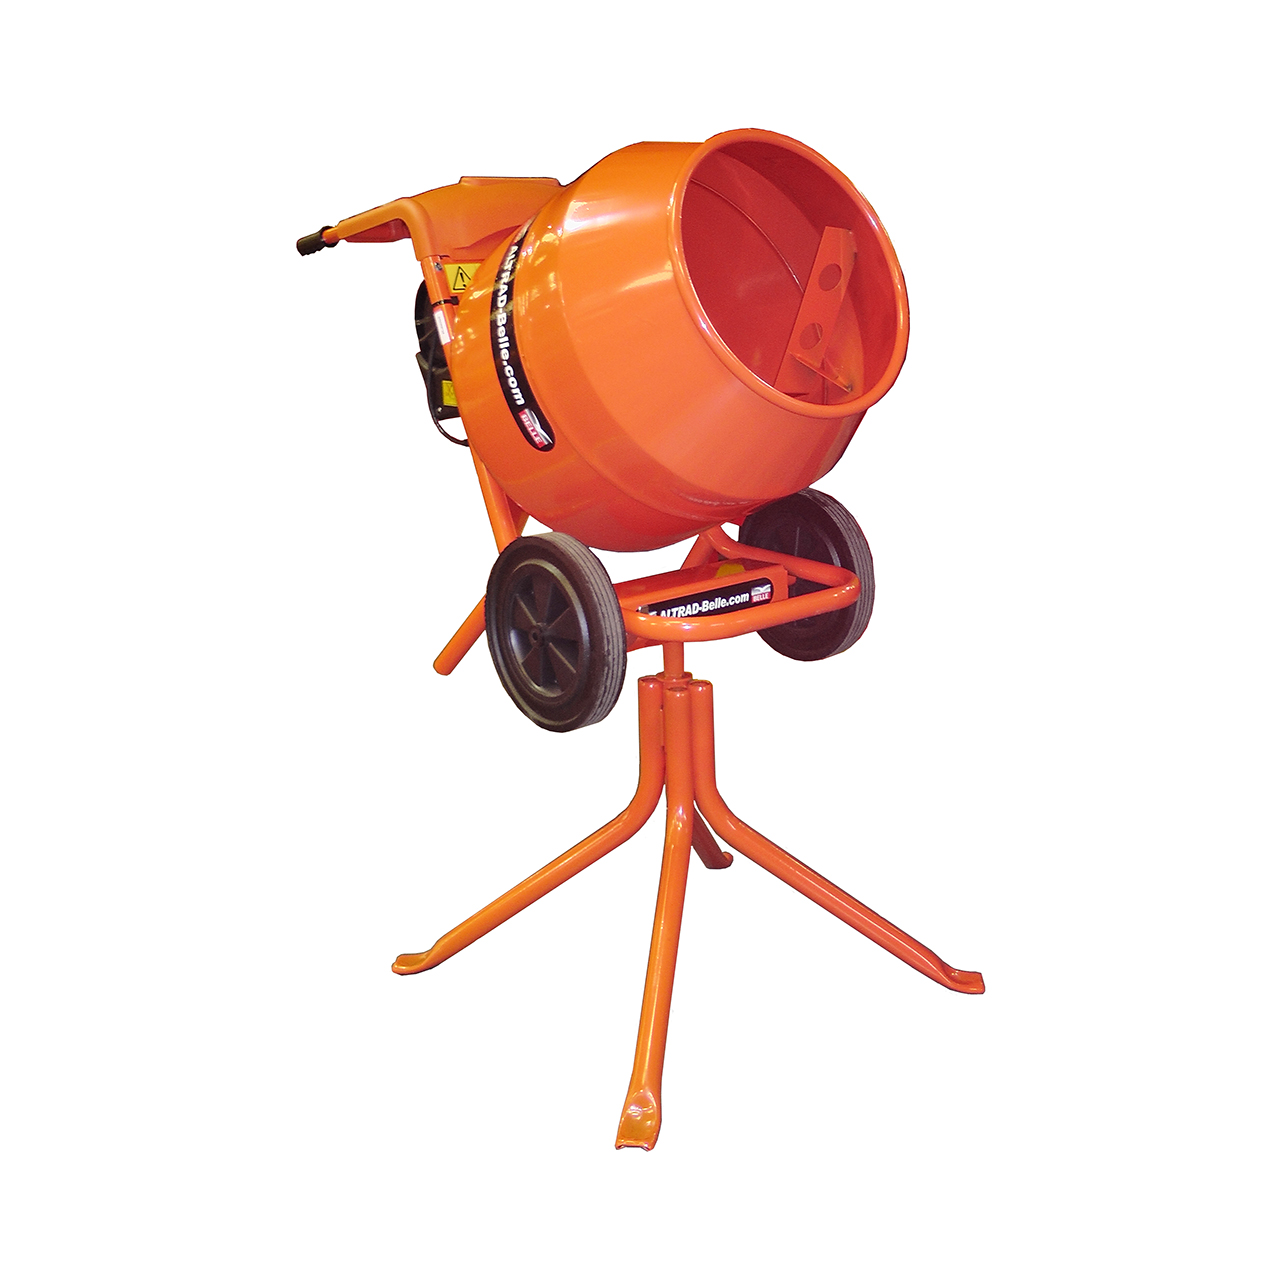 Belle Minimix 150 Concrete Mixer 110V with Stand image 0